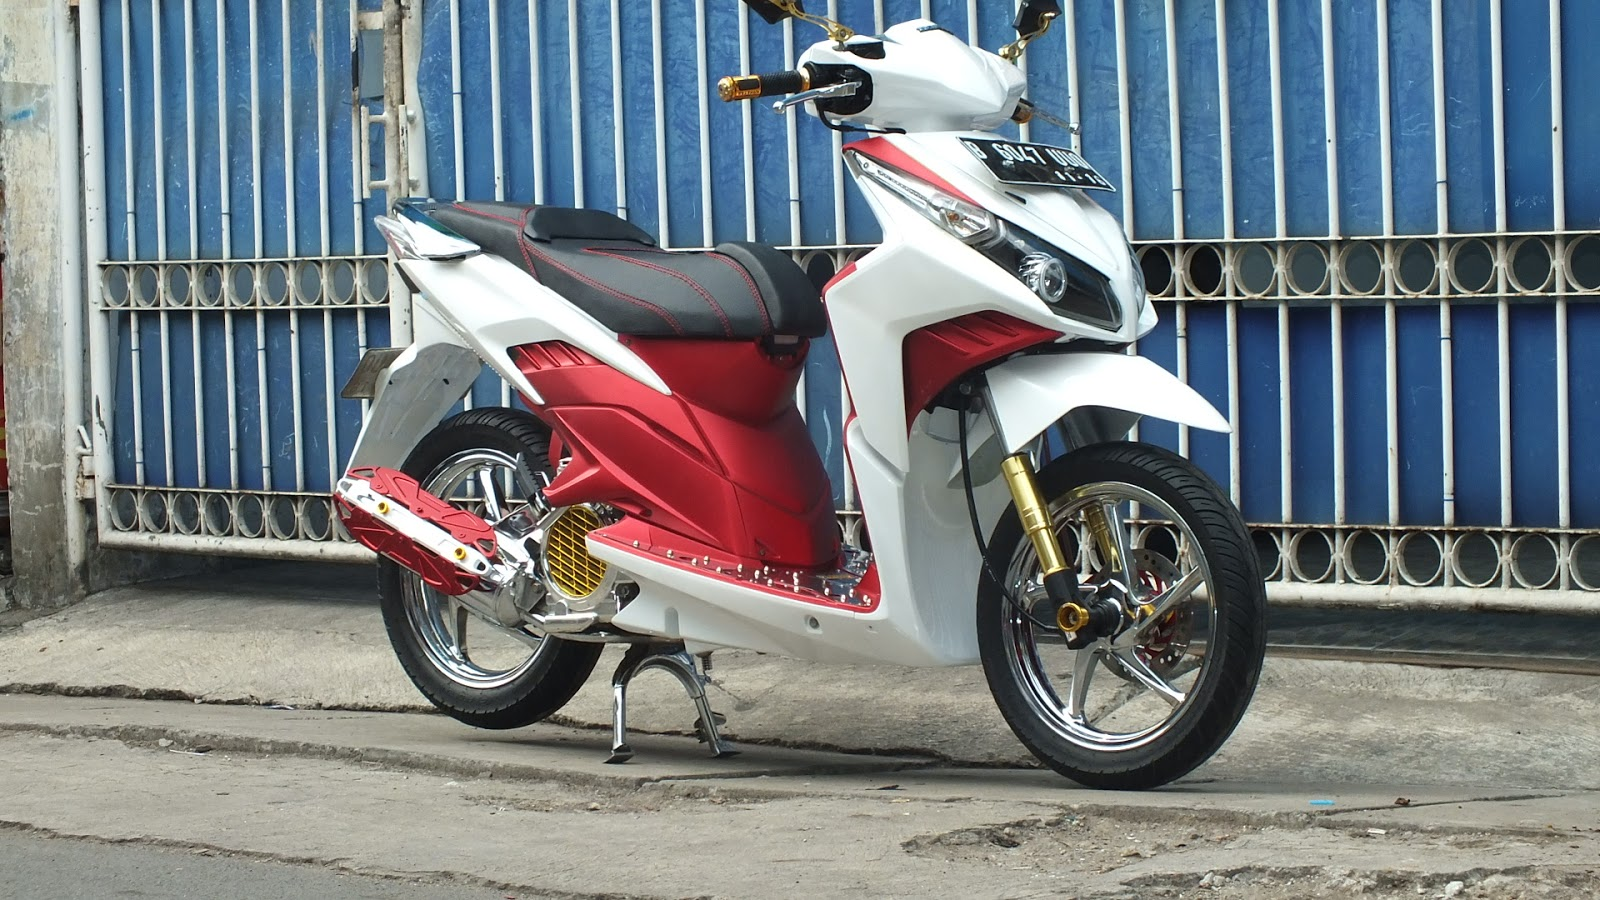 Modifikasi Vario Techno 110cc Kumpulan Modifikasi Motor Vario